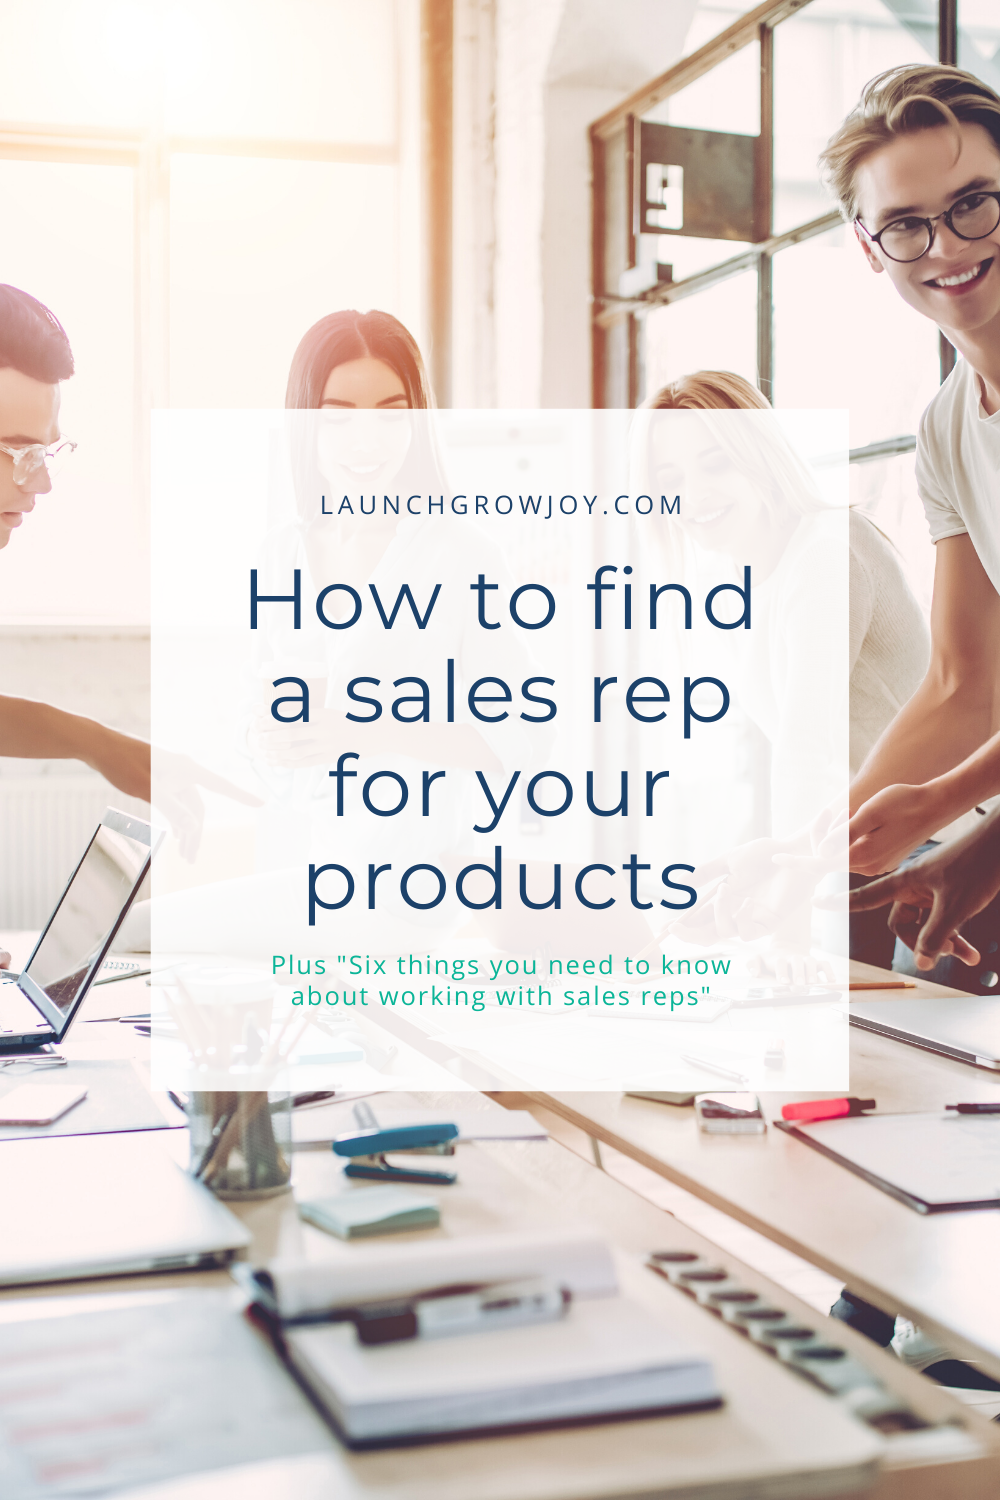 Finding a sales rep